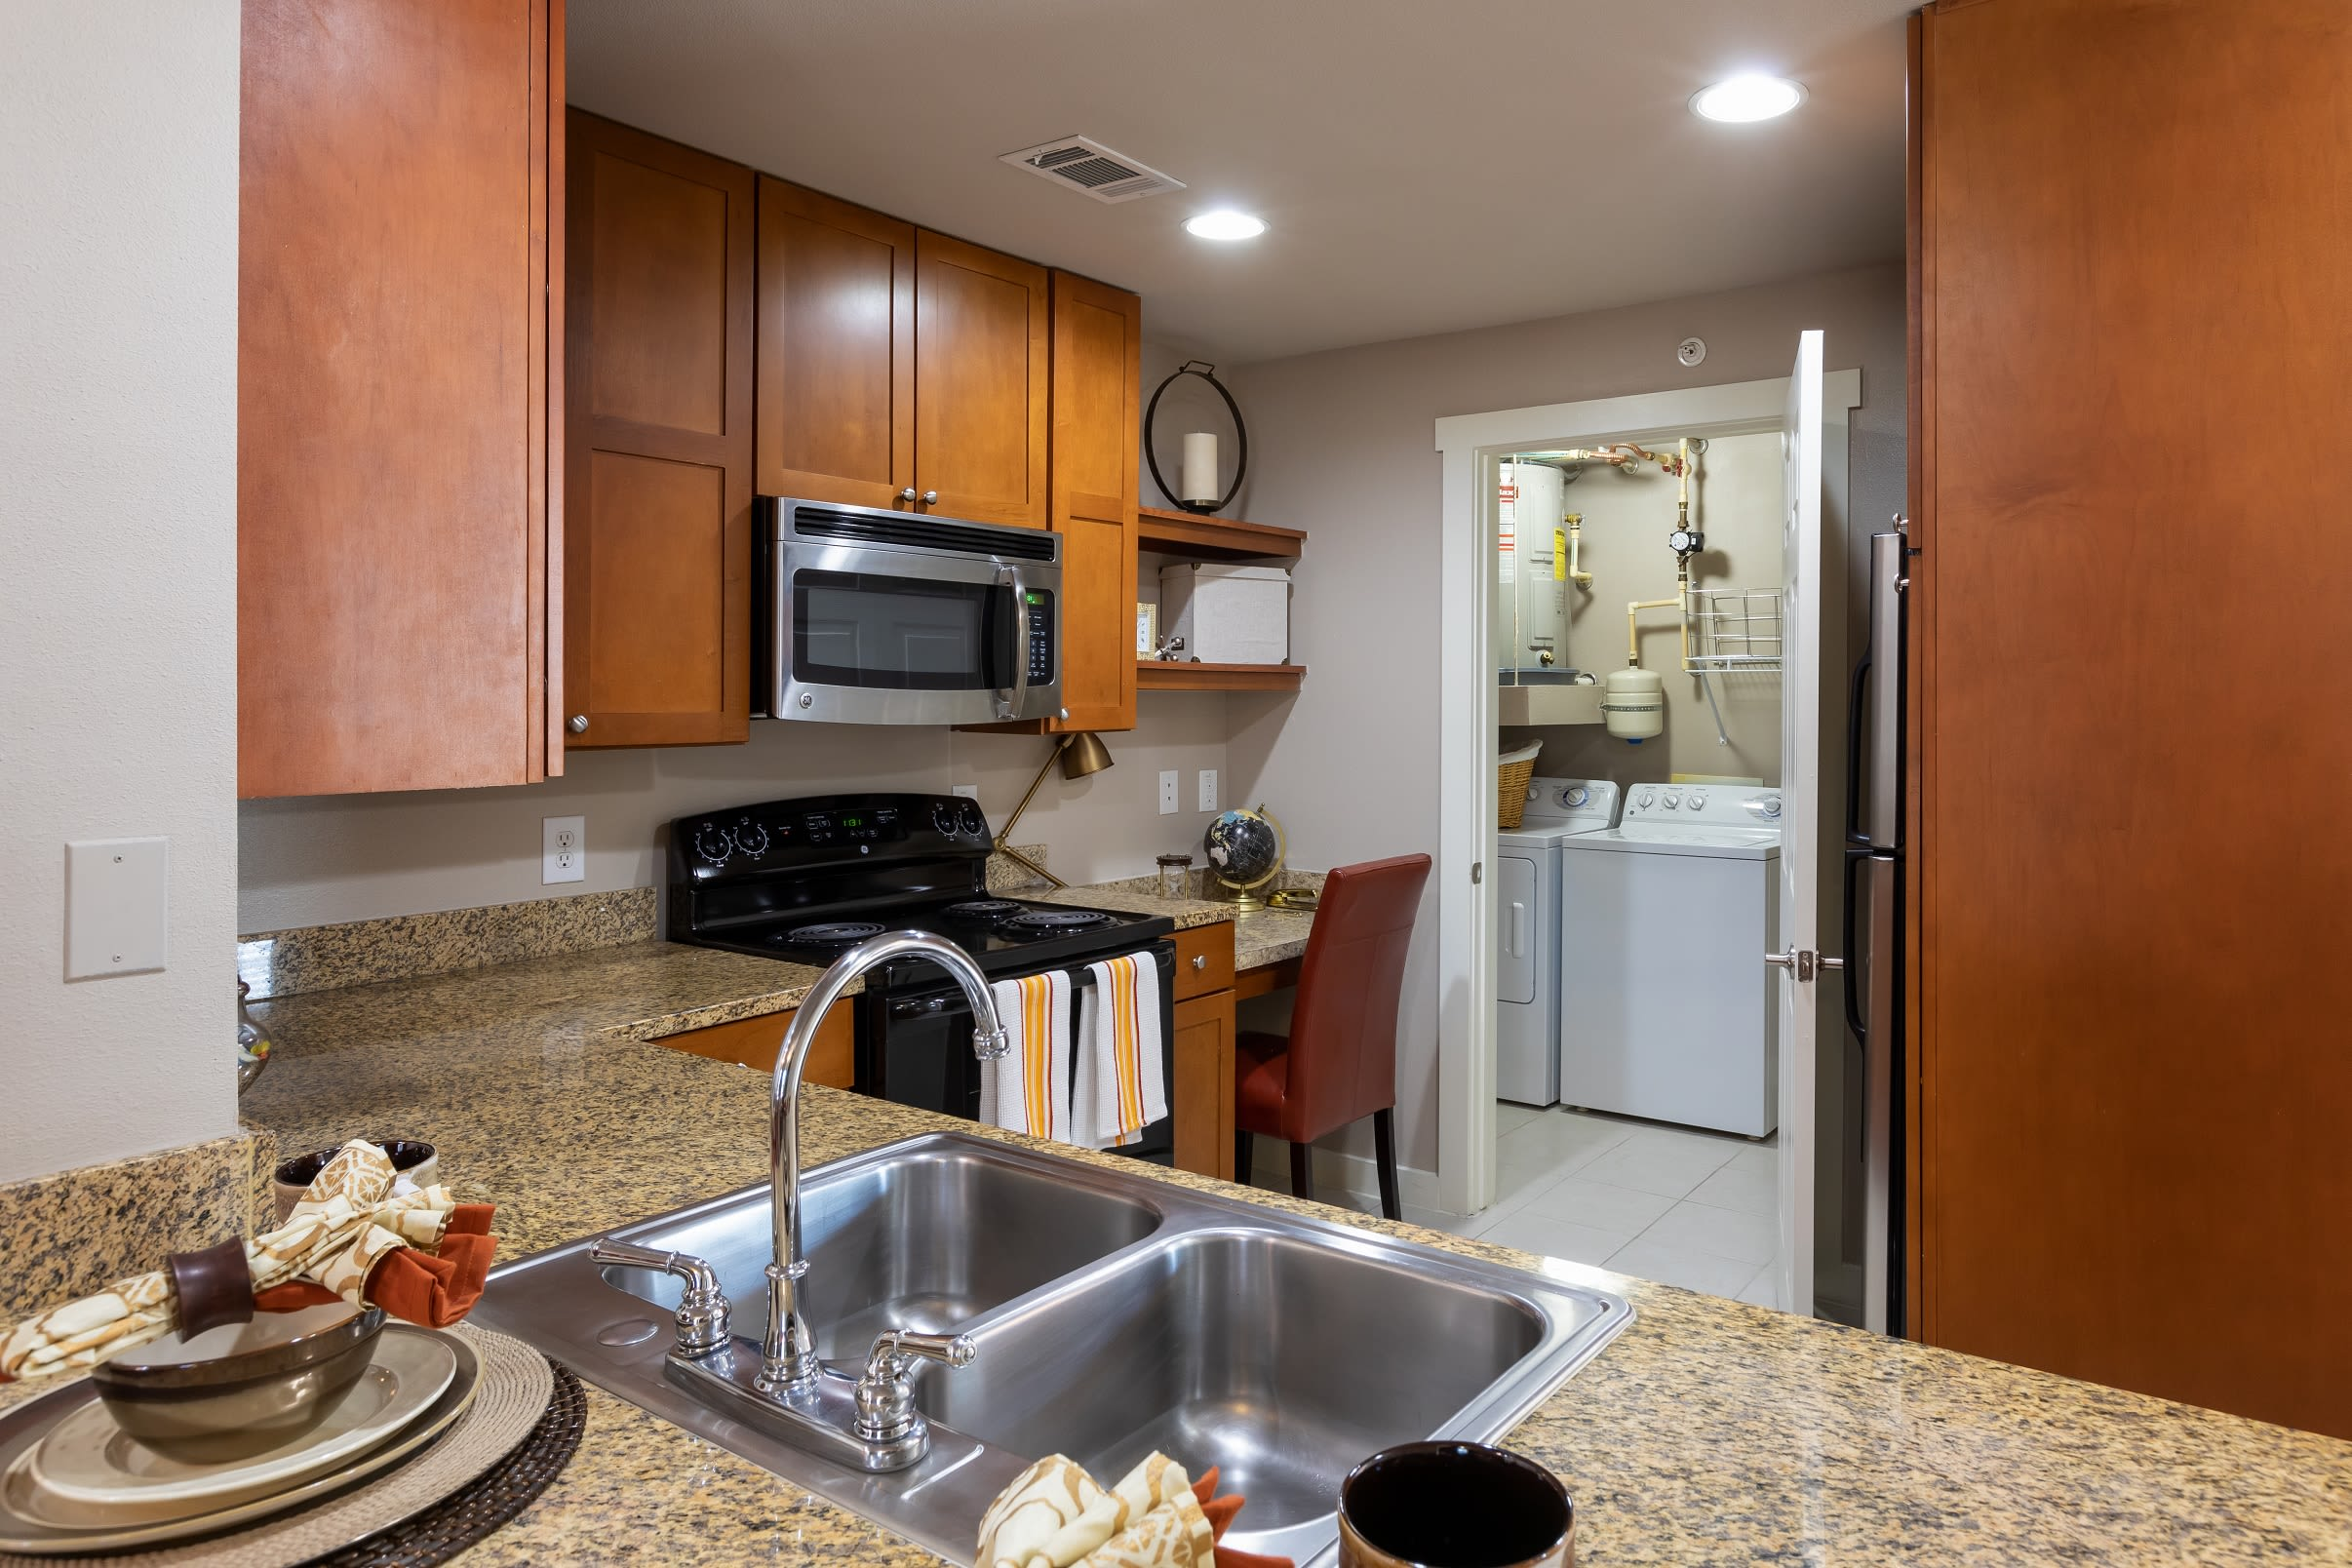 Kitchen area of model home at Lakefront Villas in Houston, Texas